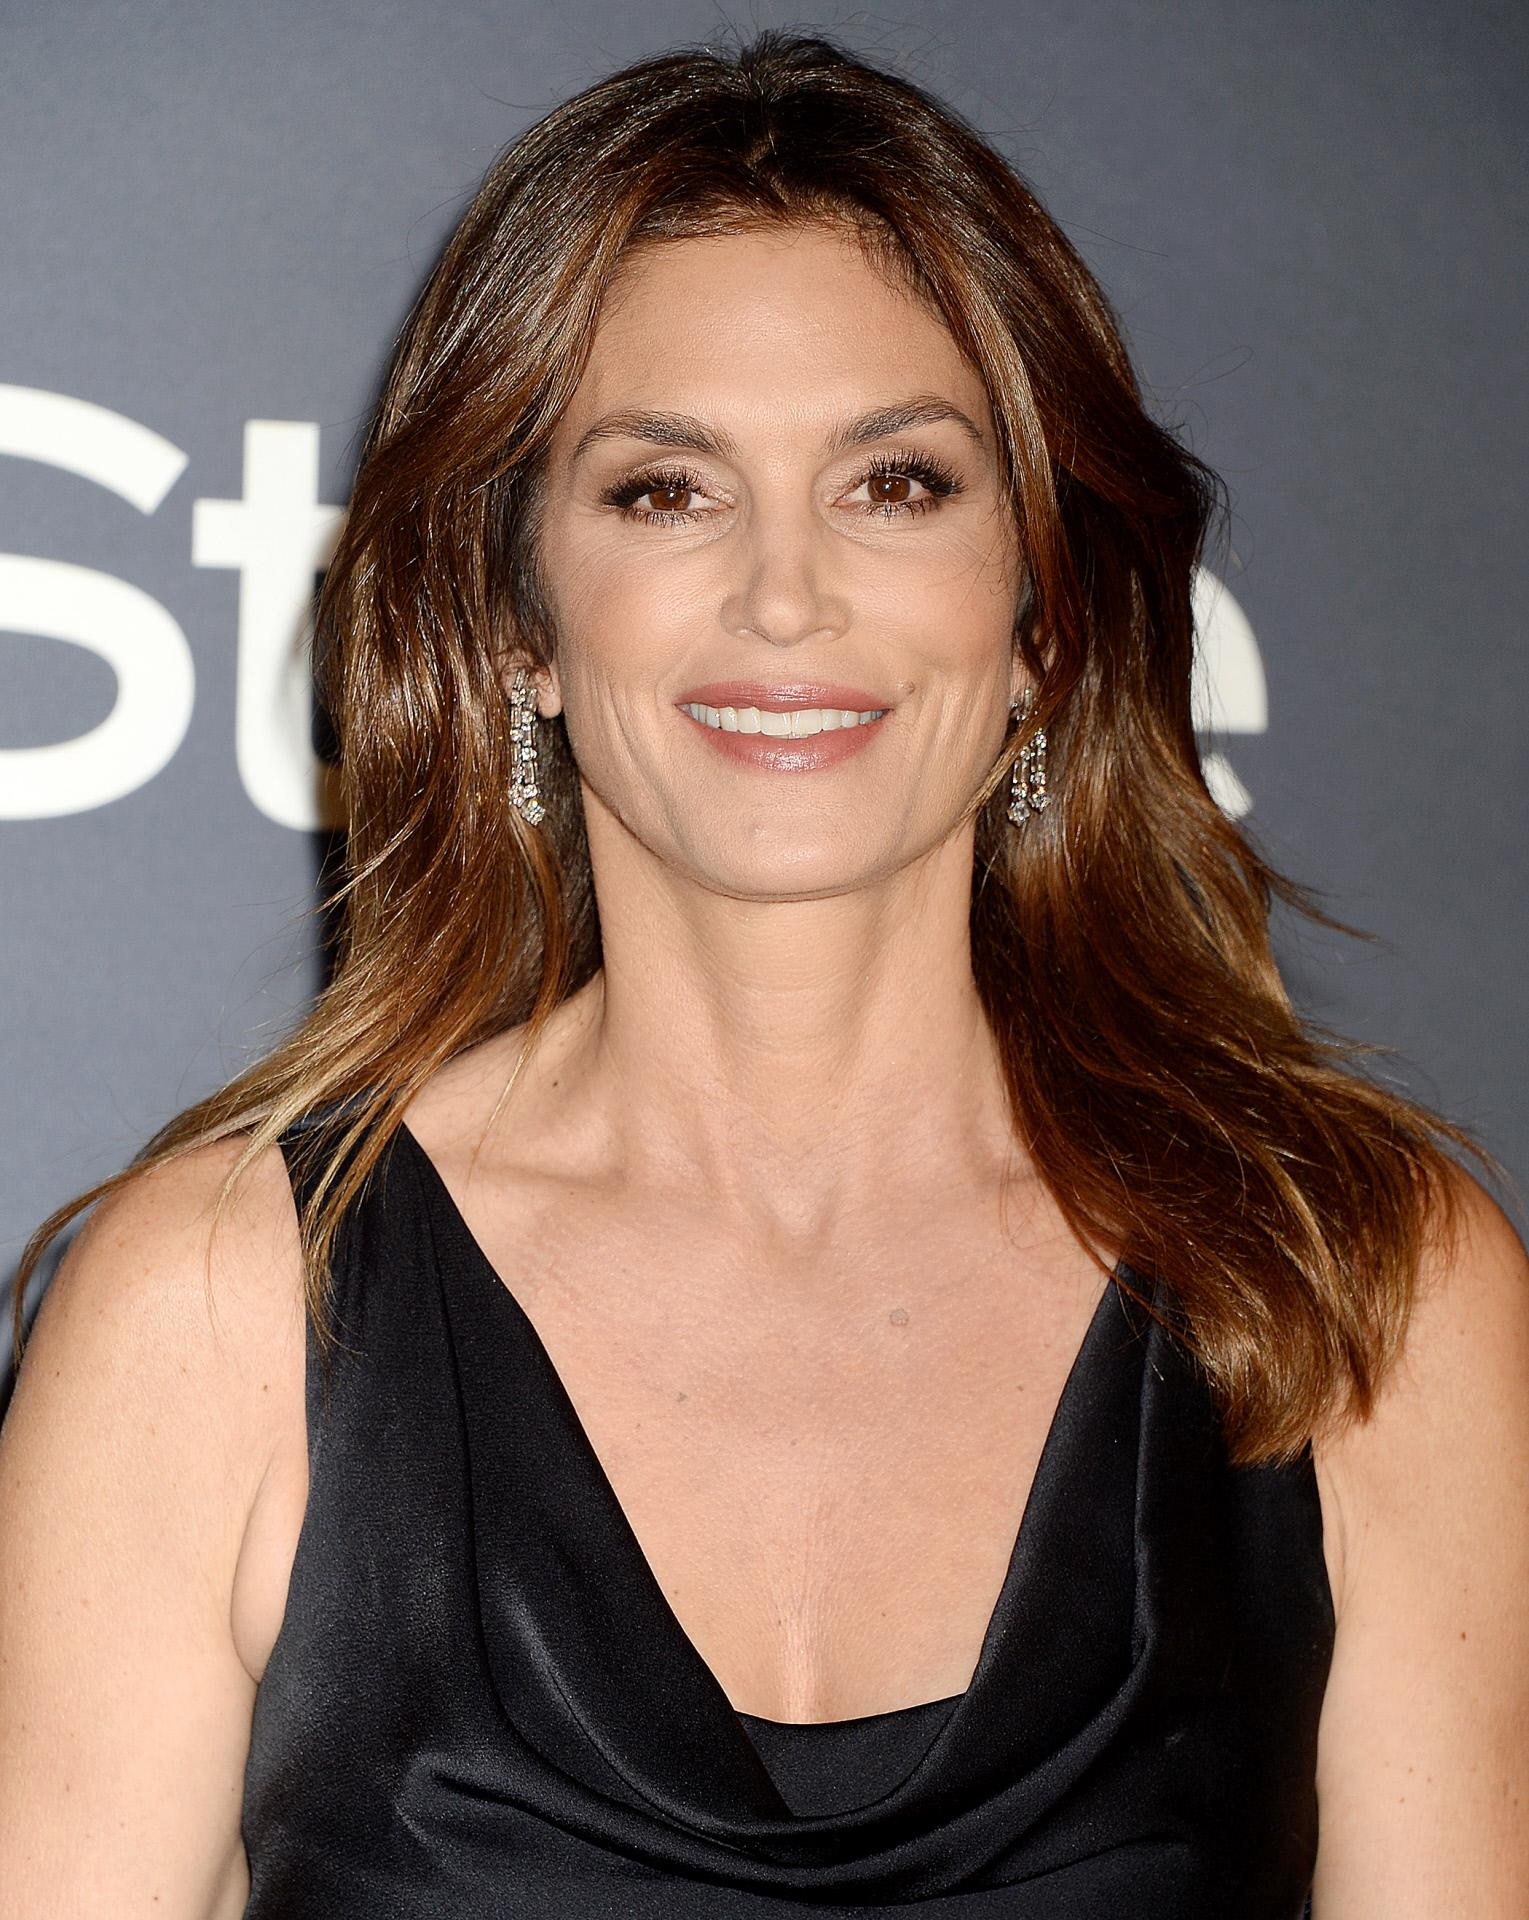 DL u386866 019. Cindy Crawford